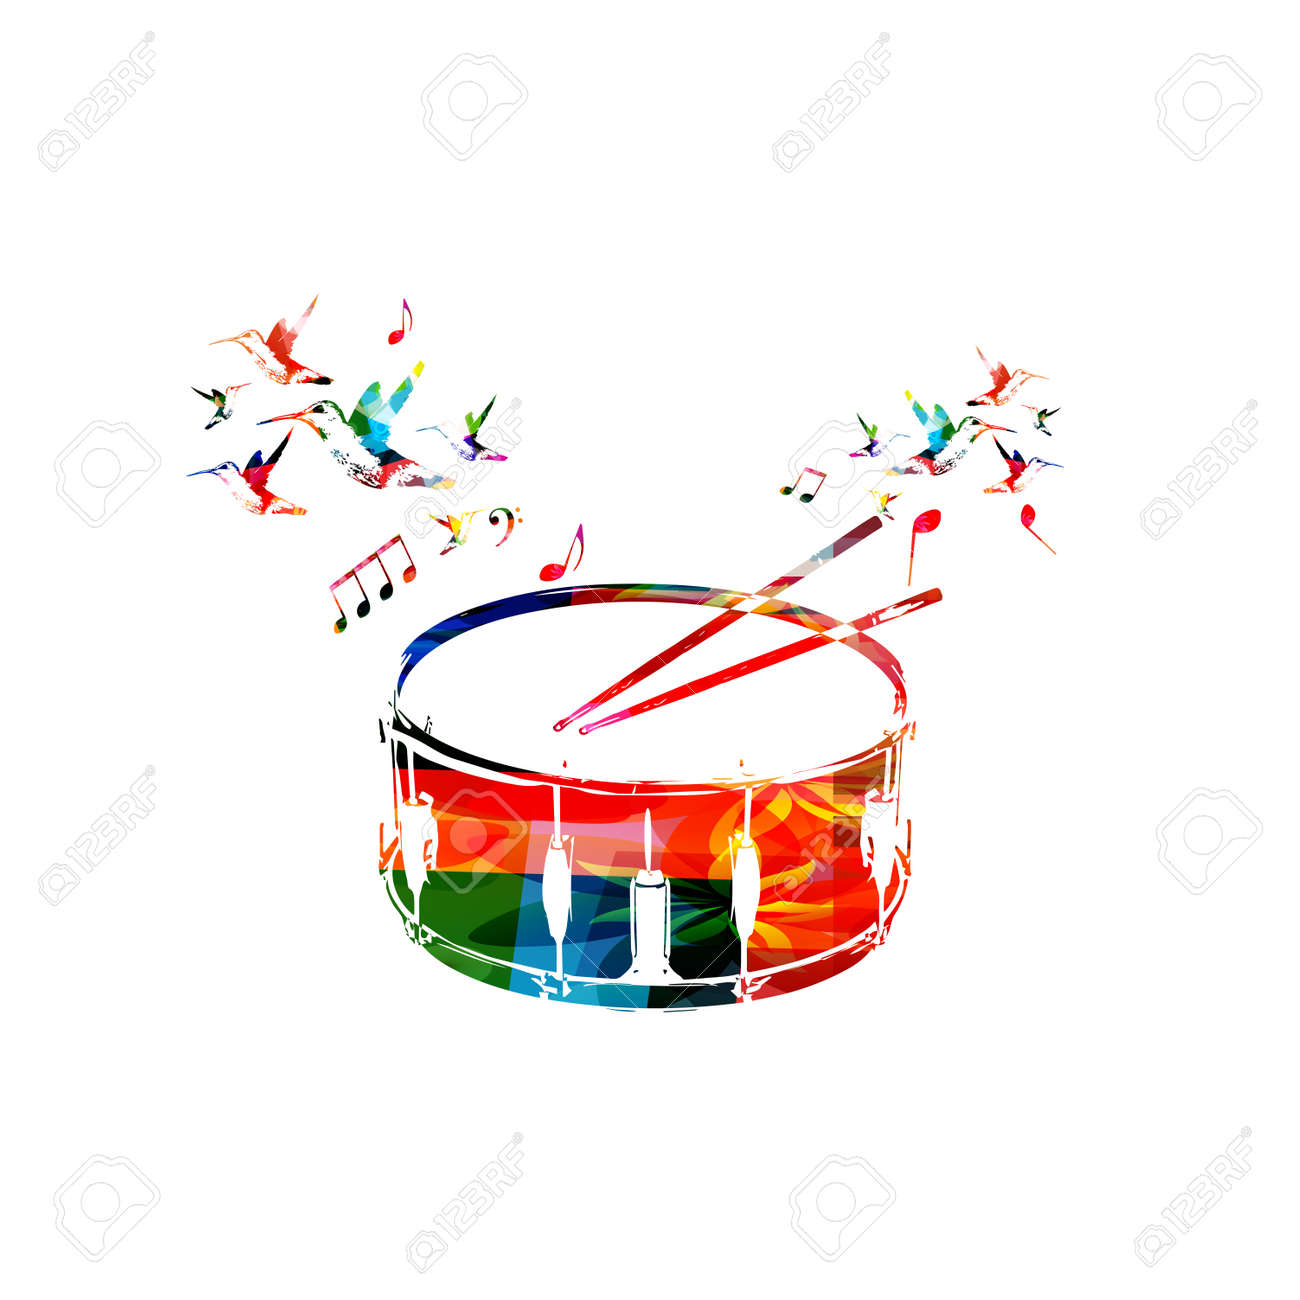 Colorful Drum With Music Notes And Hummingbirds Isolated Vector Illustration Instrument Background For Poster